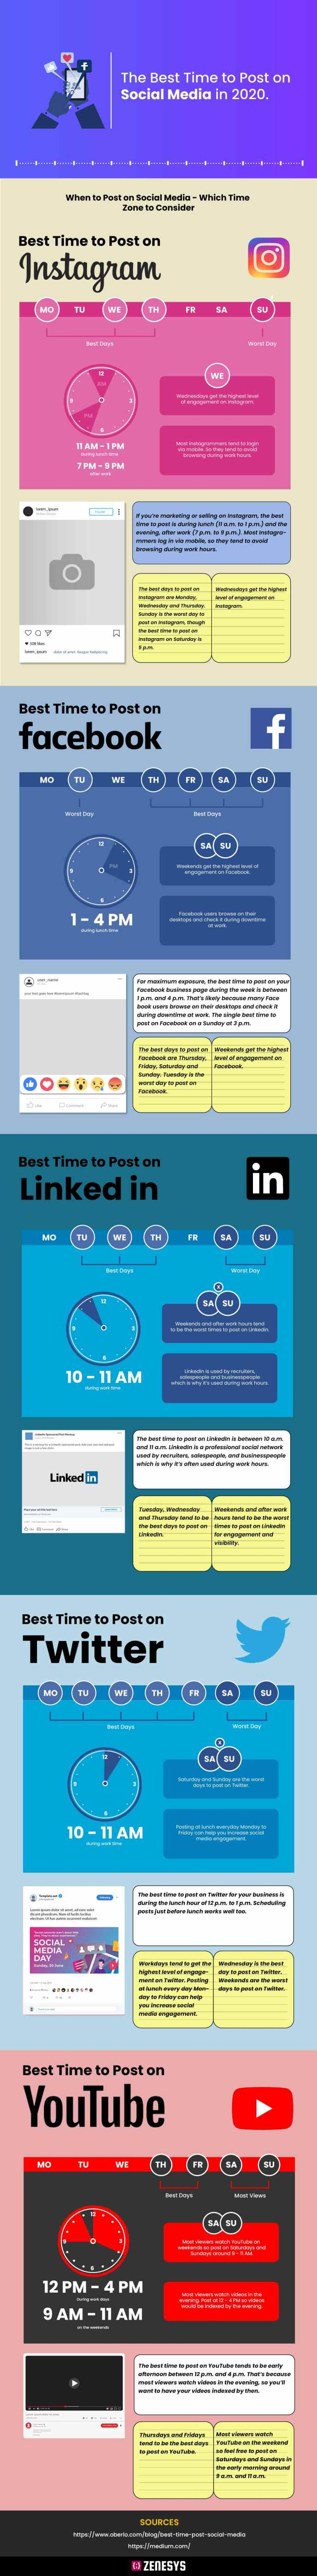 The best time to post on Social Media in 2020 | An Infographic